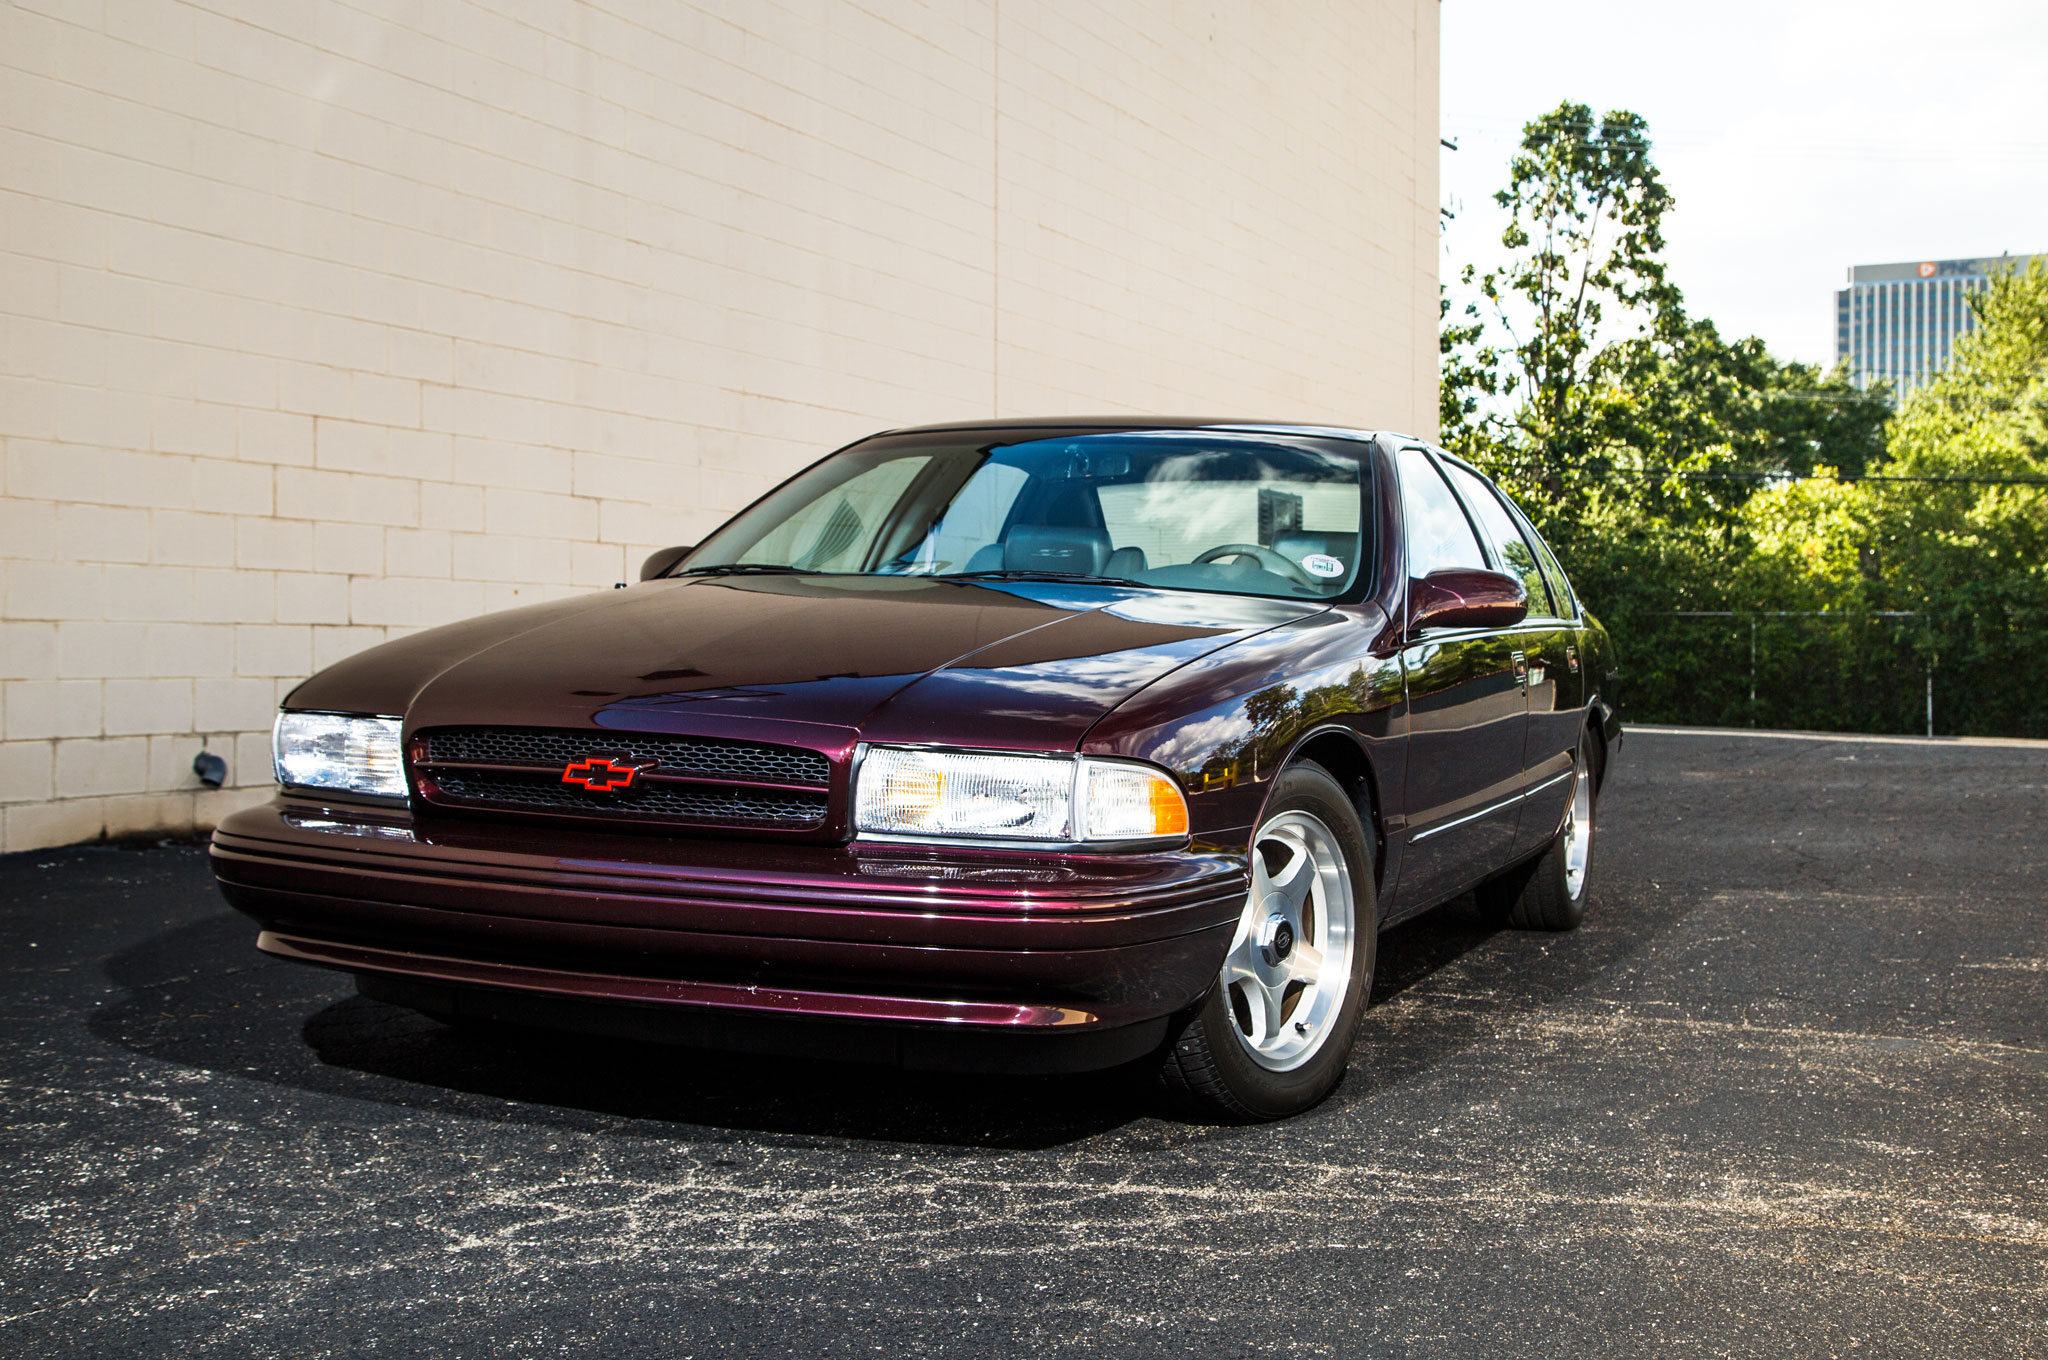 Collectible Classic 19941996 Chevrolet Impala SS